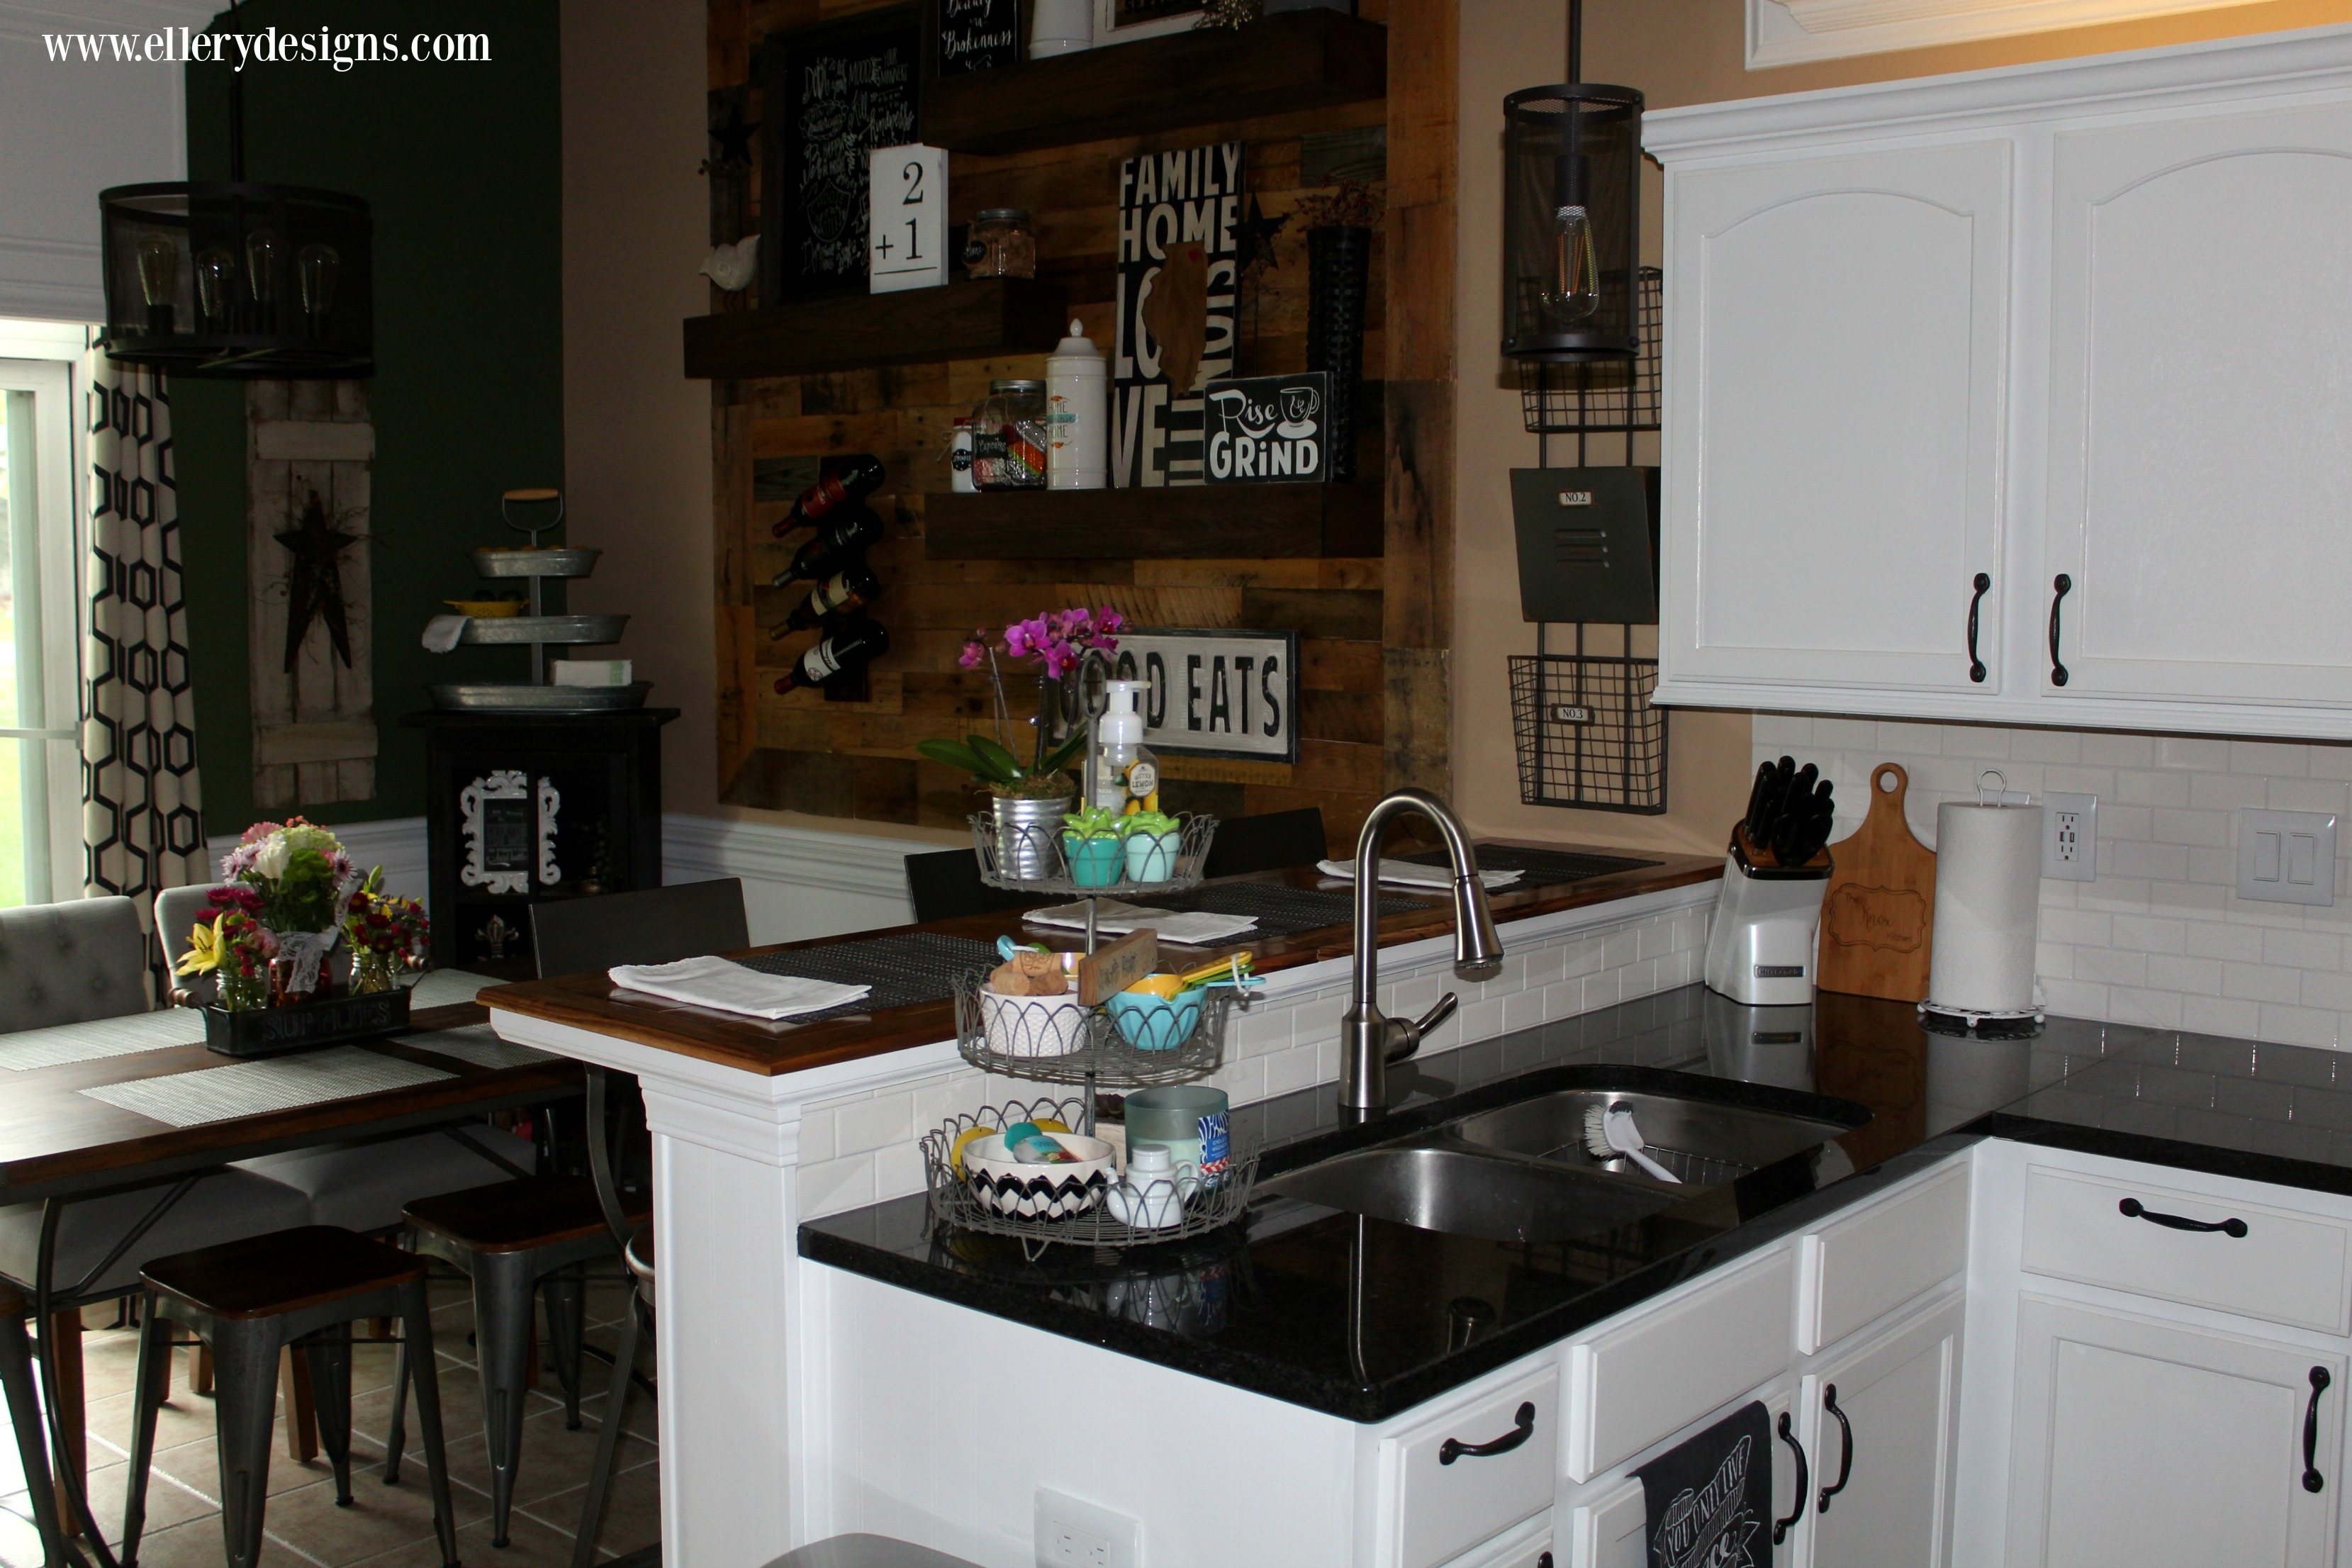 Beautiful White Industrial Farmhouse Kitchen Makeover - ElleryDesigns.com